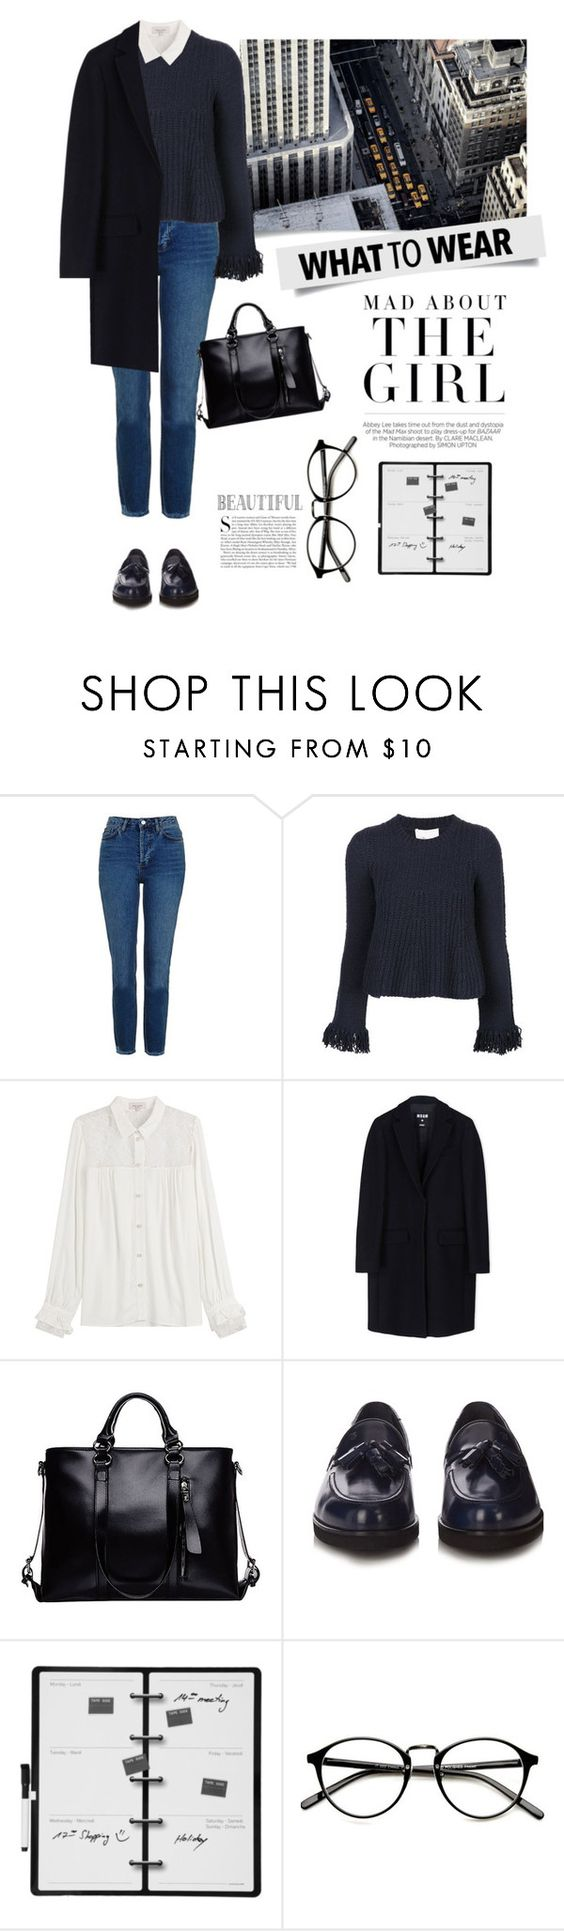 """#126"" by kgarden ❤ liked on Polyvore featuring Made of Me, Topshop, 3.1 Phillip Lim, Paul & Joe, MSGM, Tod's, Kershaw and Kikkerland"